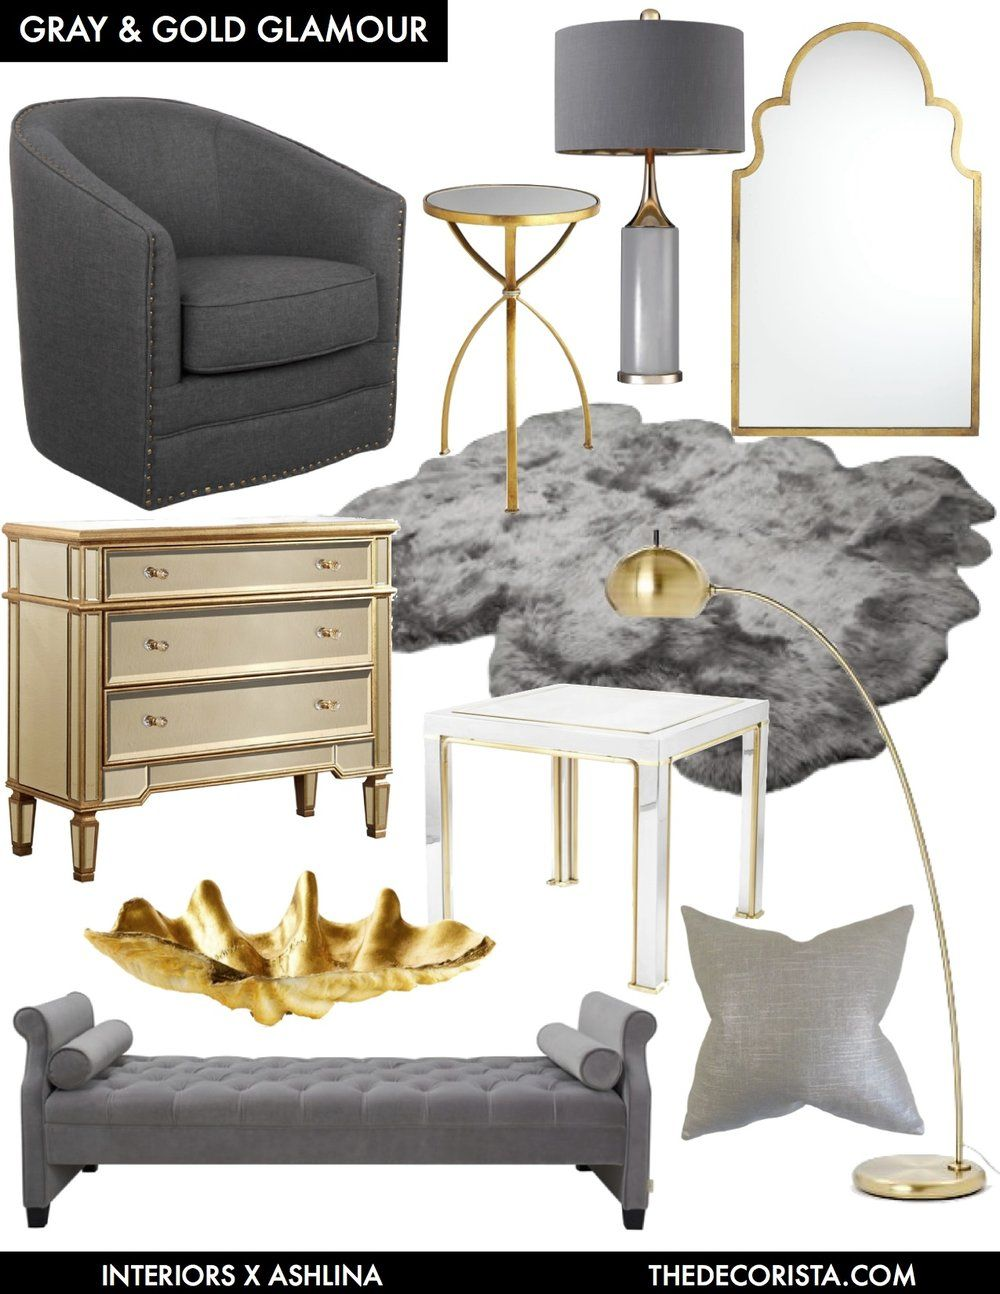 Best Color Crushing Decorating With Gray And Gold For Glamour 400 x 300